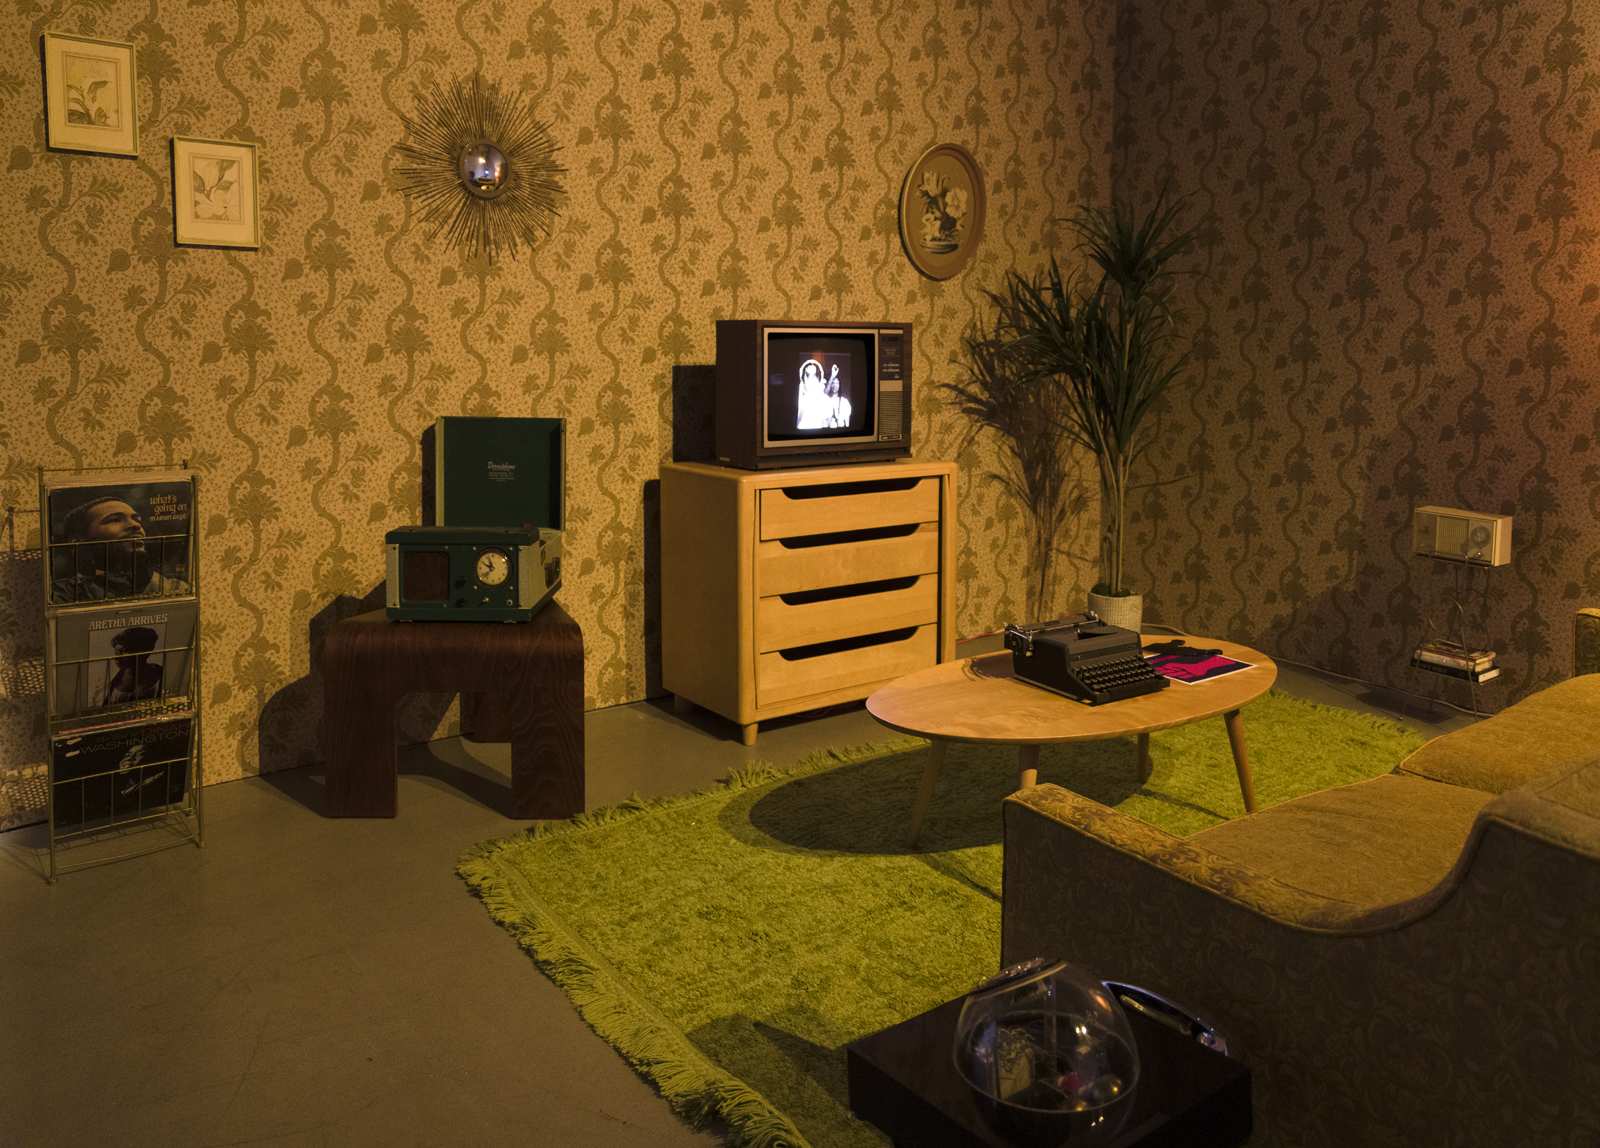 installation view of blitz bazawule's a moment in time at uta artist space, with dark, yellow-toned room with retro TV, couch, wallpaper and magazine rack